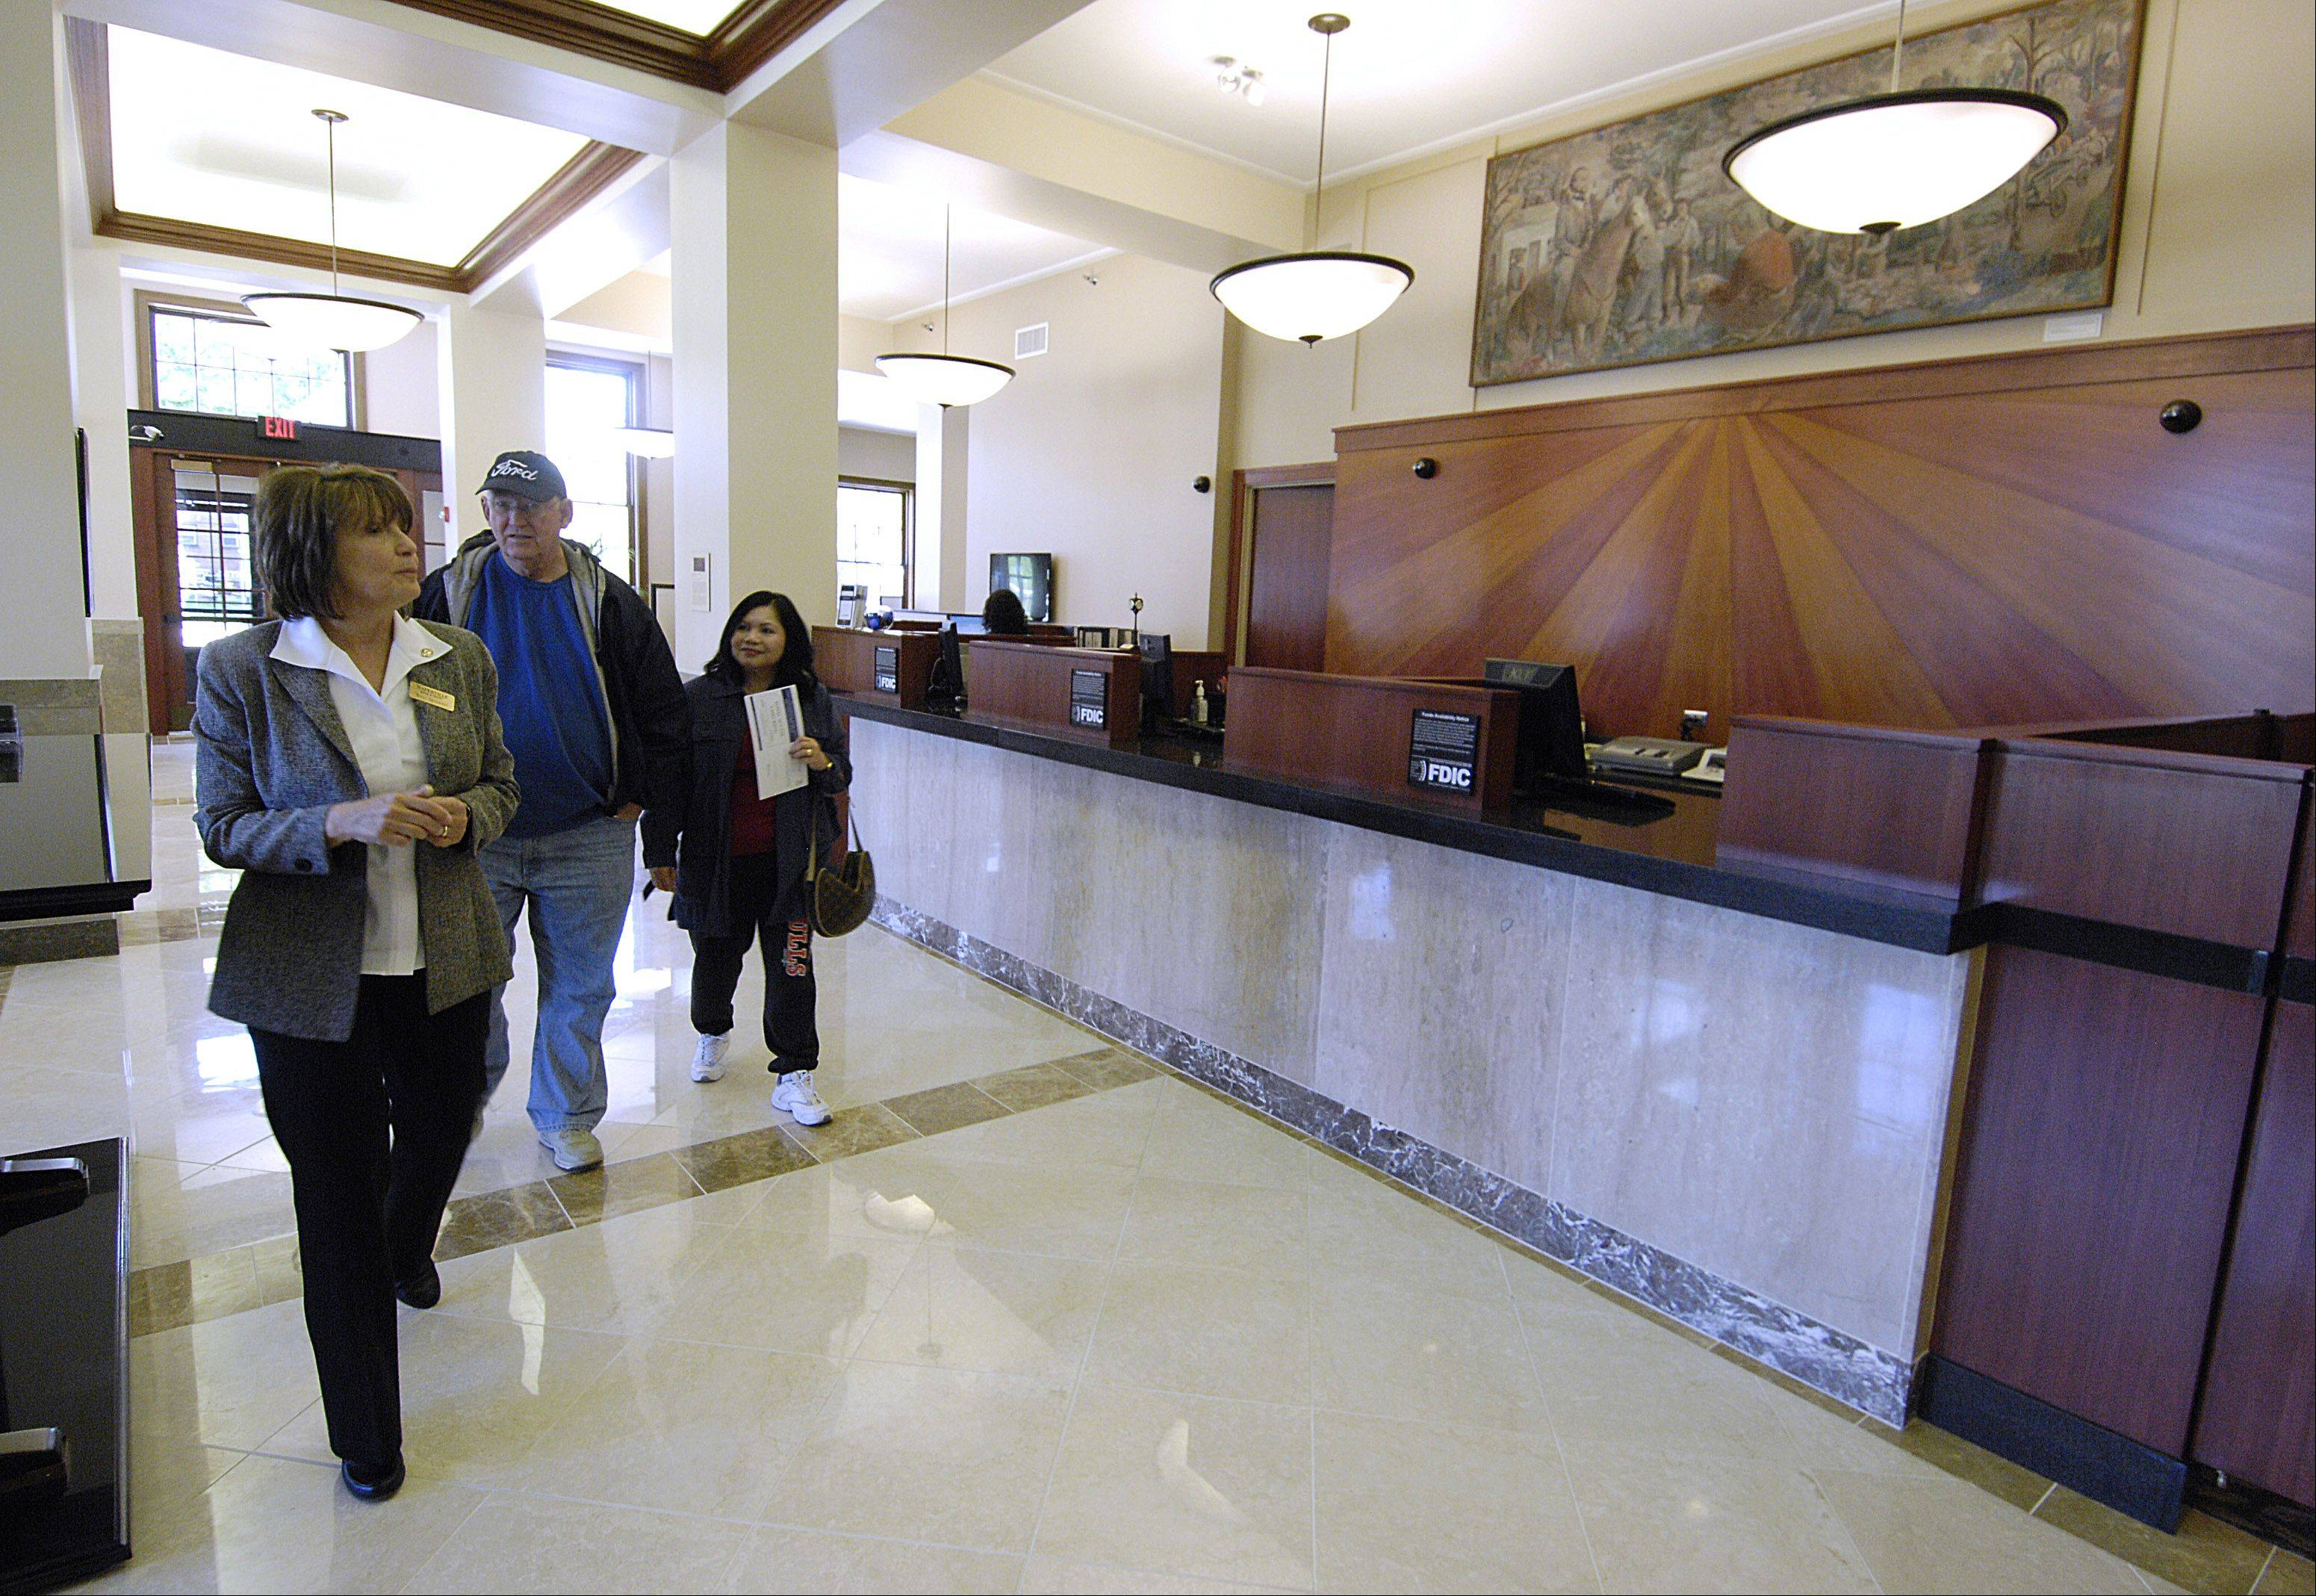 Senior personal banker Terri Spizzirri gives Steve and Tess Dinnsen of Naperville a tour of the new Naperville Bank & Trust on Washington Street. The bank opened for business Monday morning.